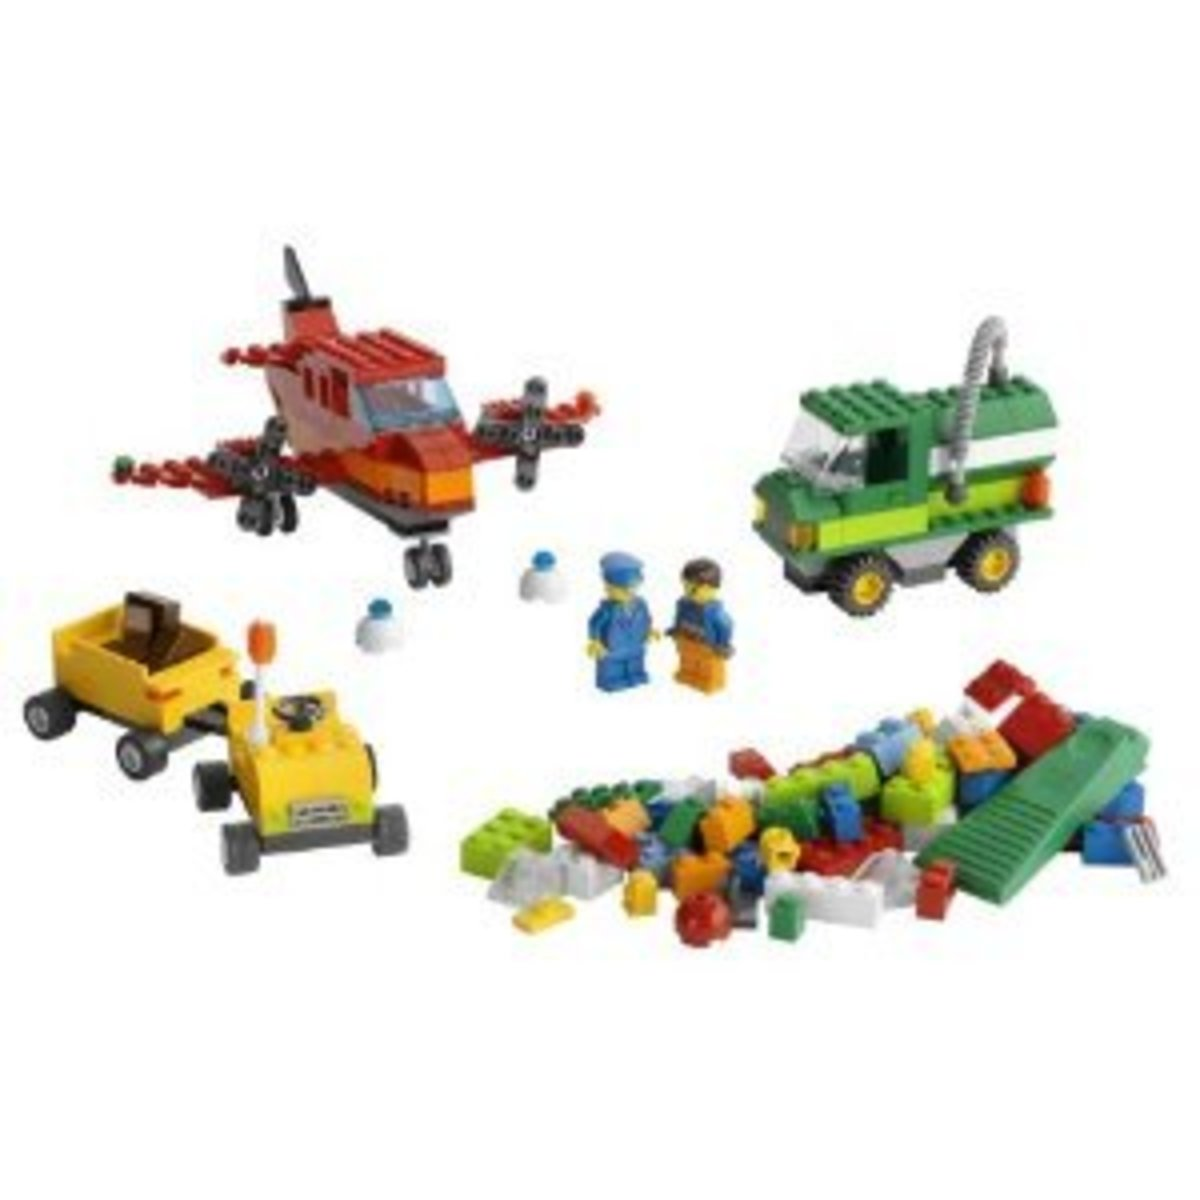 Lego Airport Building Set